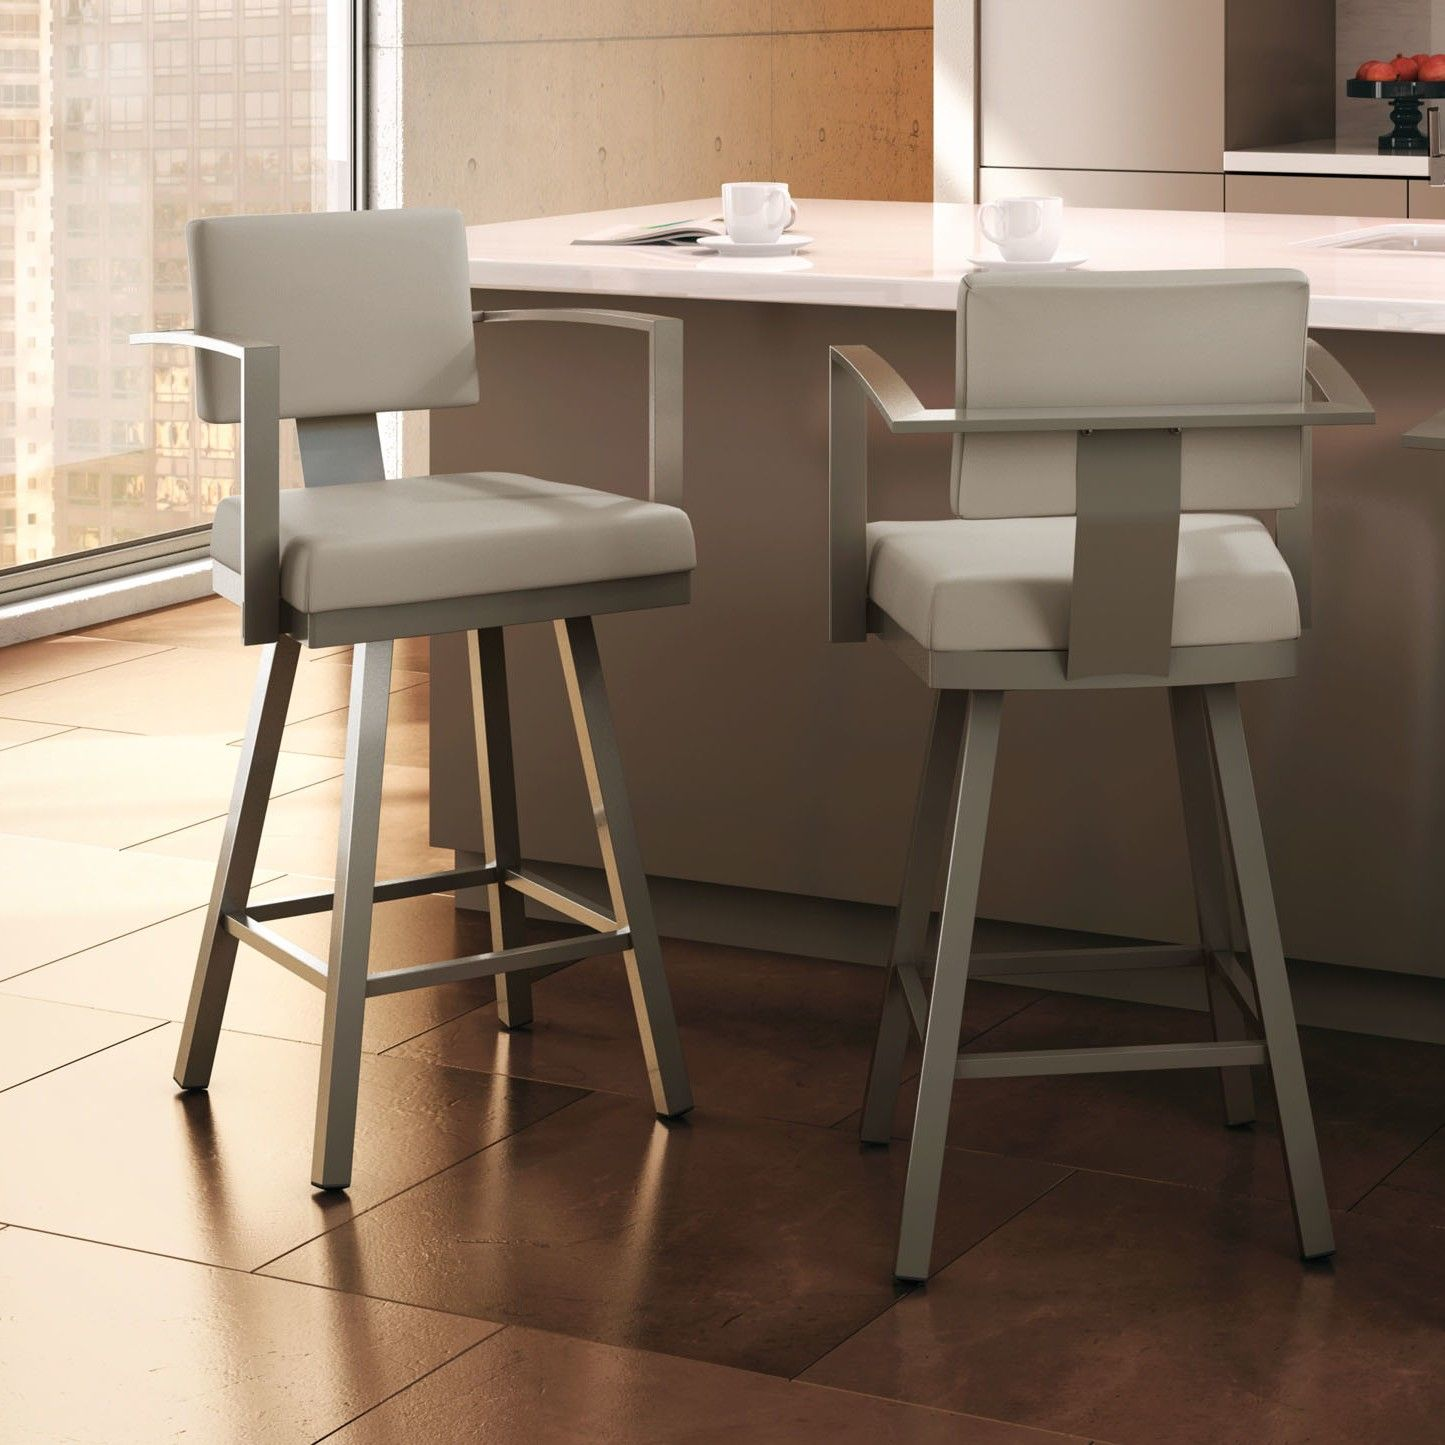 Bar Stools with Backs for Inspiring High Chair Design